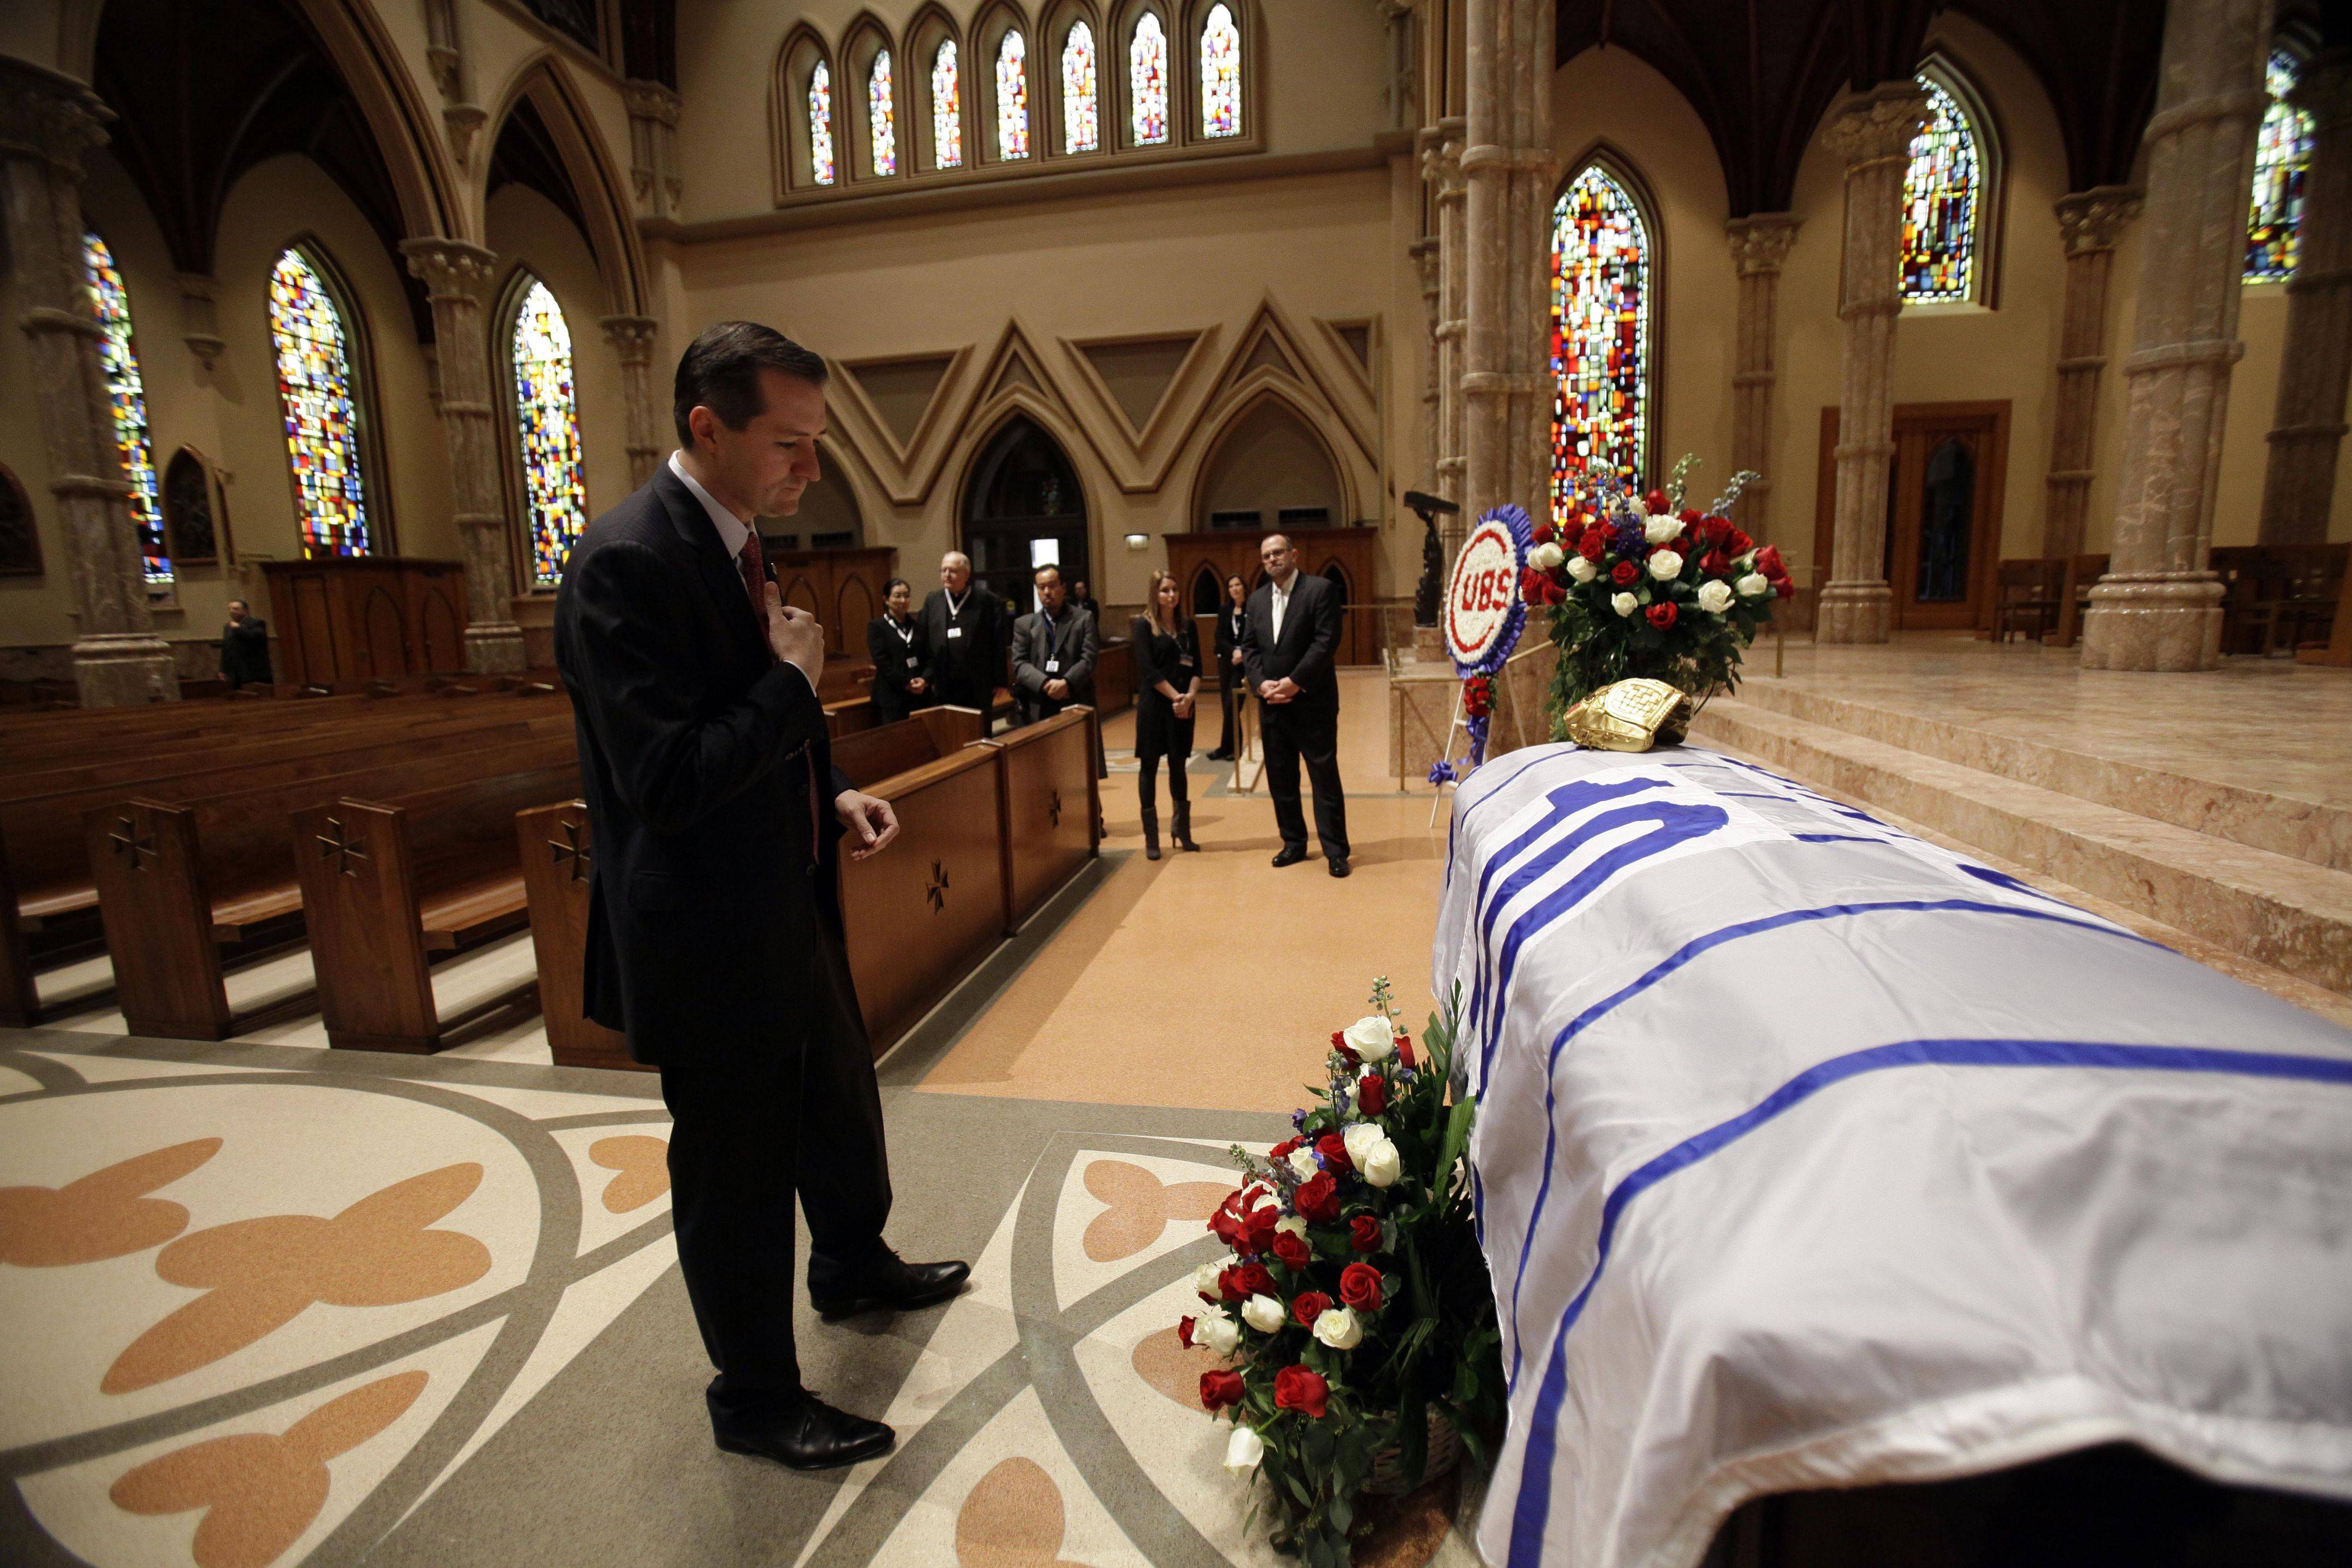 Chicago Cubs chairman Tom Ricketts prays as the casket for Chicago Cubs great and longtime radio announcer Ron Santo arrives during the visitation at Holy Name Cathedral, Thursday, Dec. 9, 2010, in Chicago. The nine-time all-star died Thursday, Dec. 2 in an Arizona hospital from complication of bladder cancer. He was 70. (AP Photo/Nam Y. Huh, Pool)